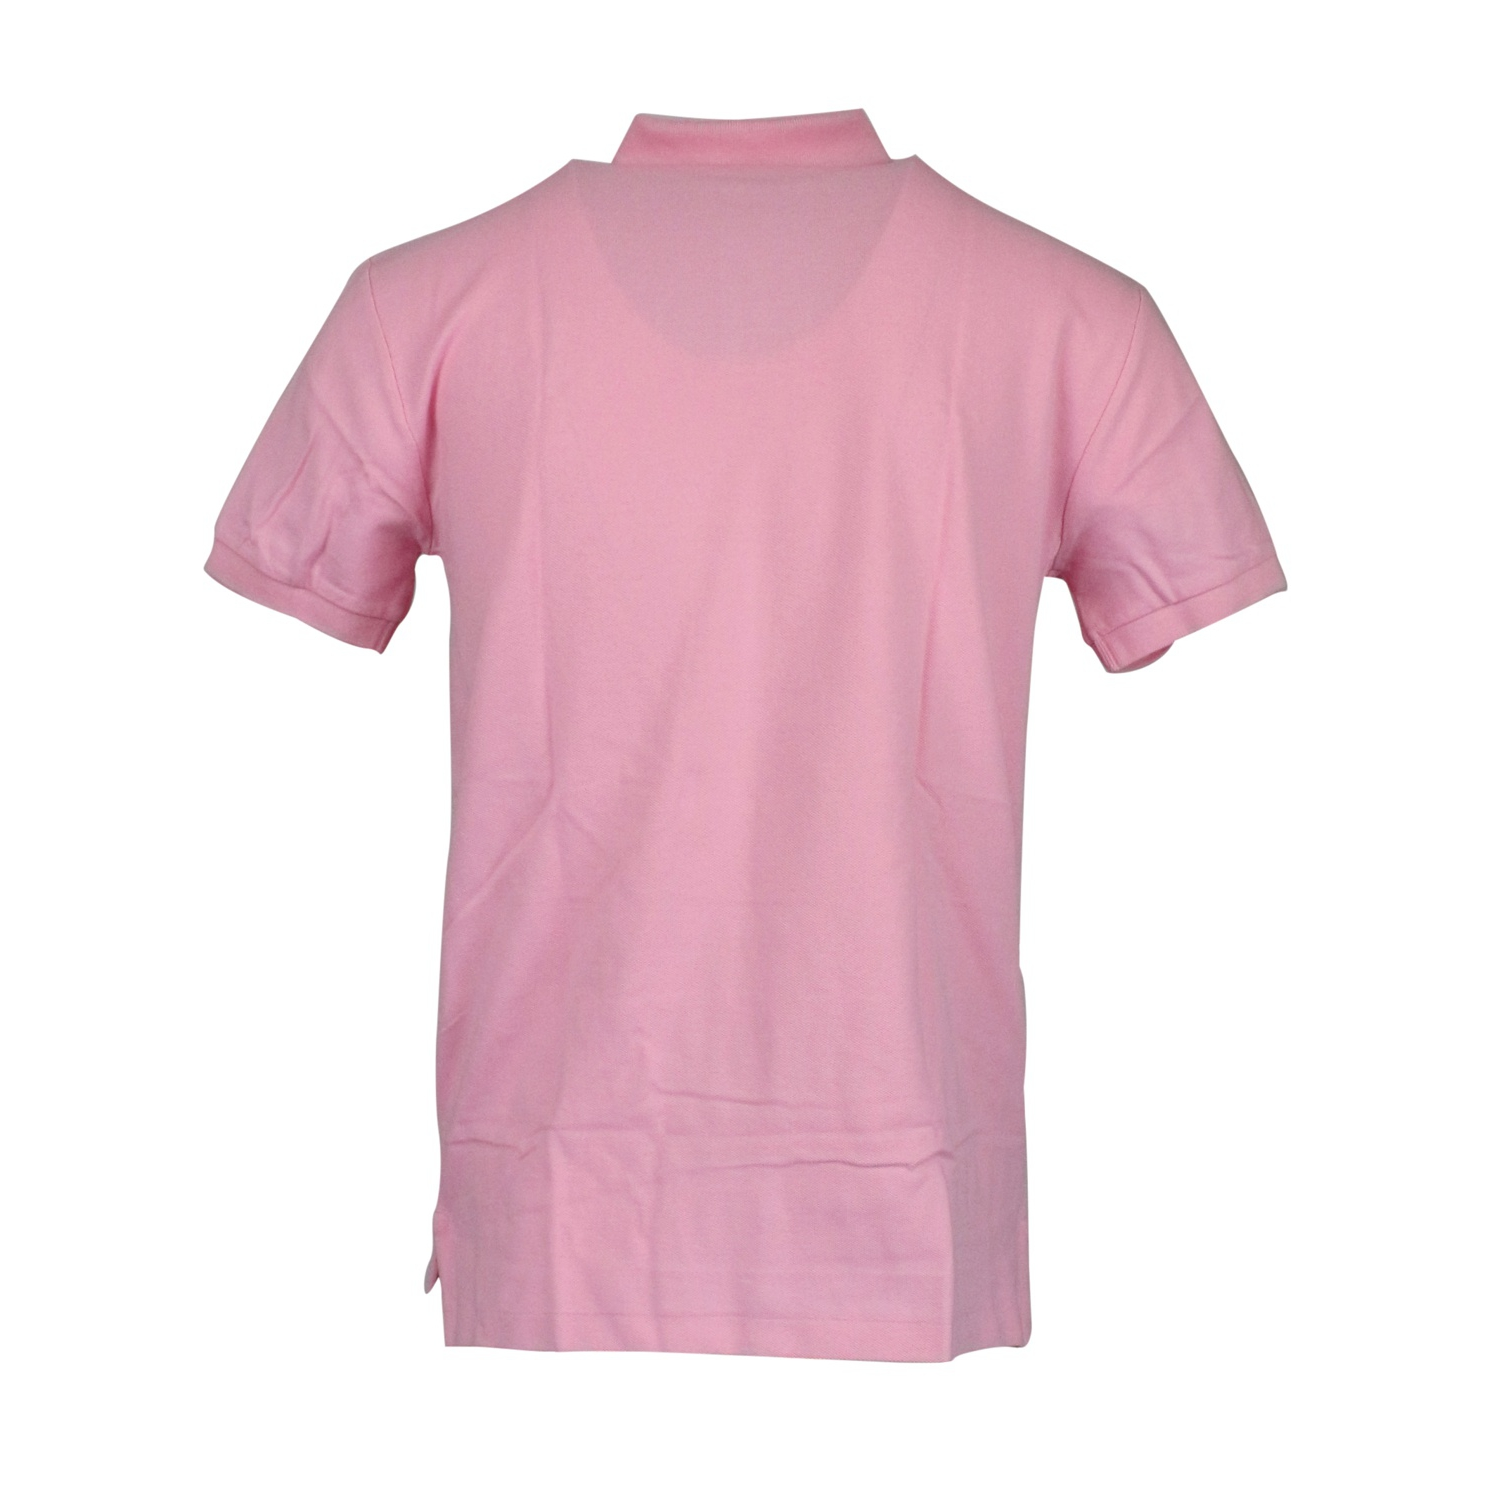 Polo 2 buttons cotton slim fit Rose, Polo Ralph Lauren 536856, Polo ... 25a2a5a0ee0